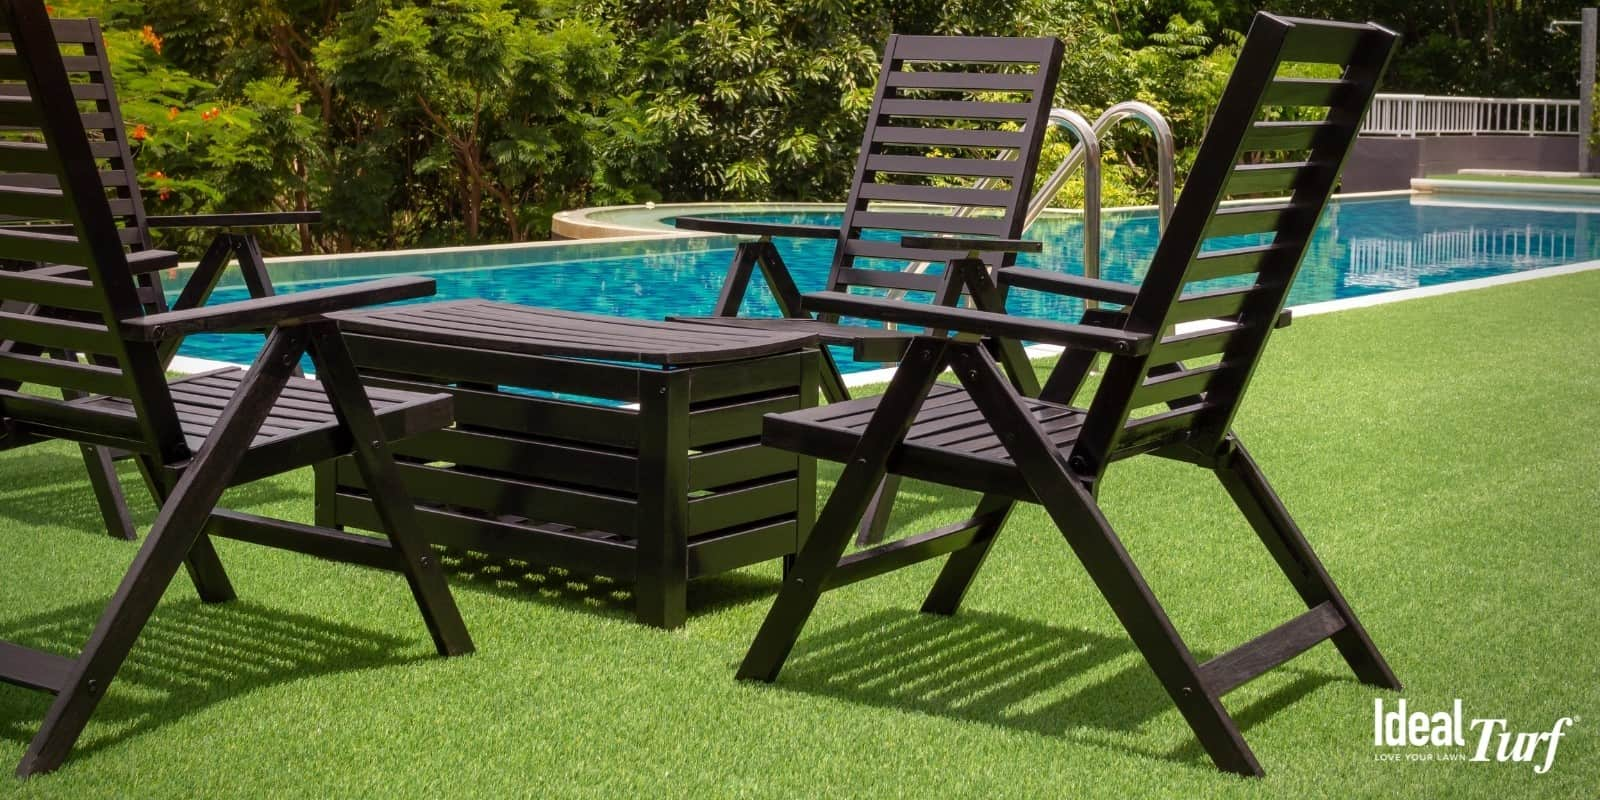 Table and chairs next to pool with artificial grass around it